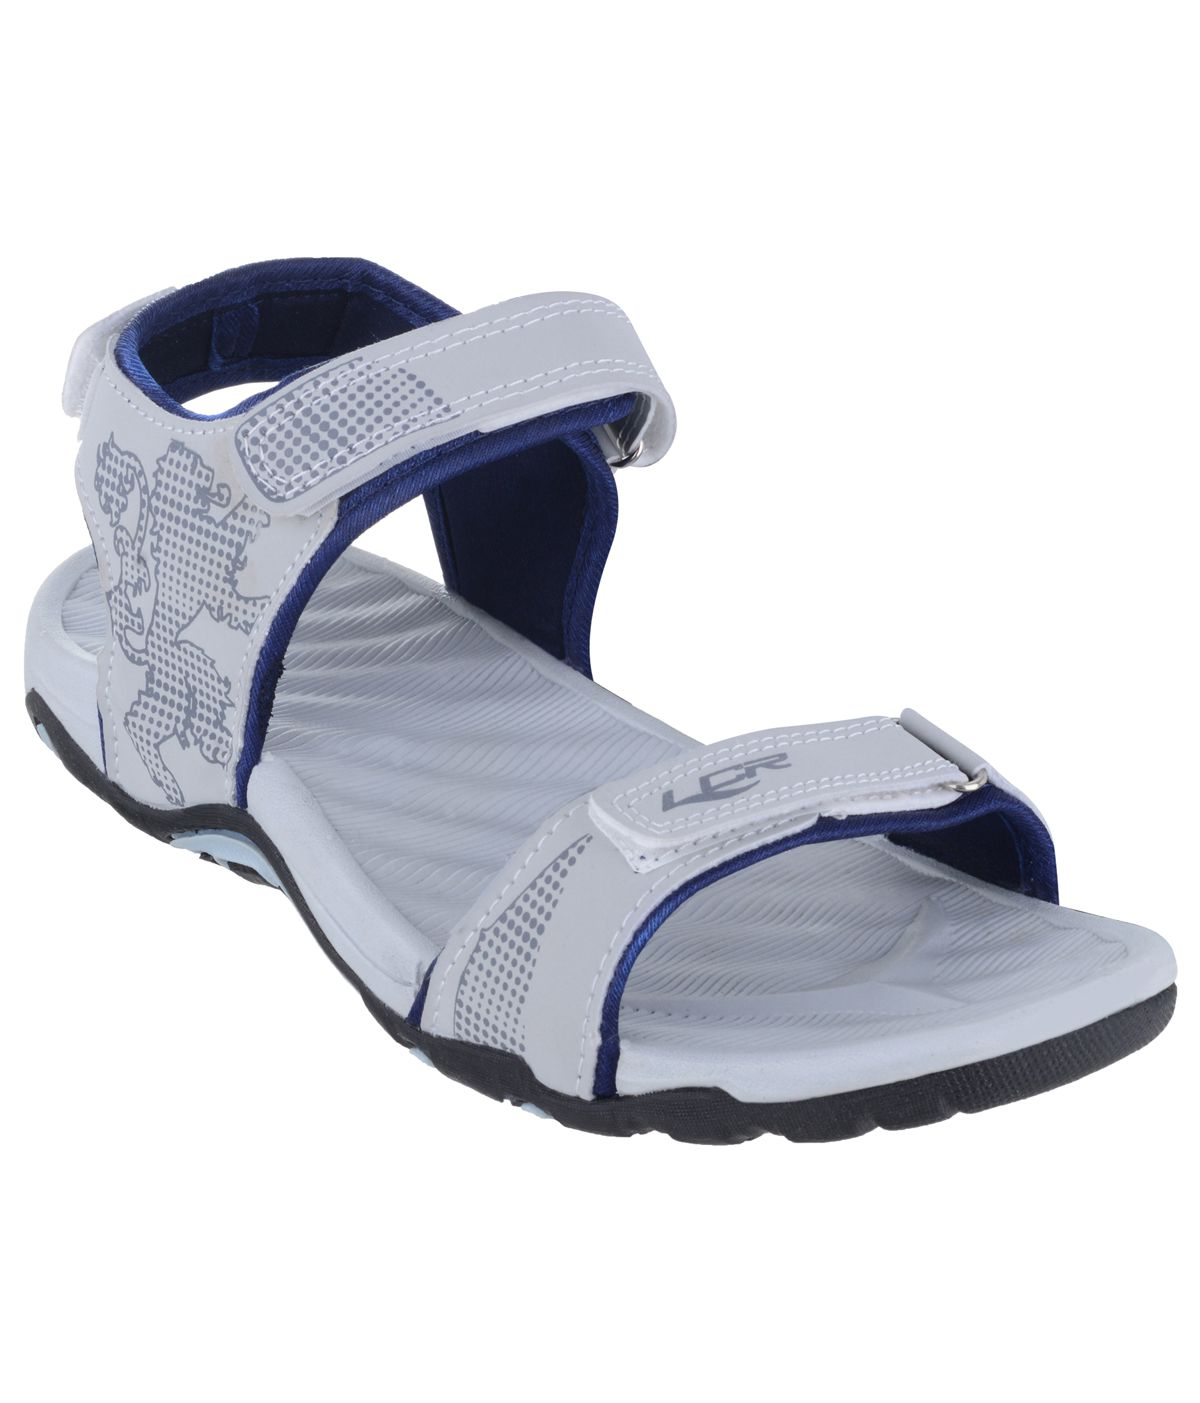 fb87c7177 Lancer earth-2 Multi Color Floater Sandals - Buy Lancer earth-2 Multi Color Floater  Sandals Online at Best Prices in India on Snapdeal